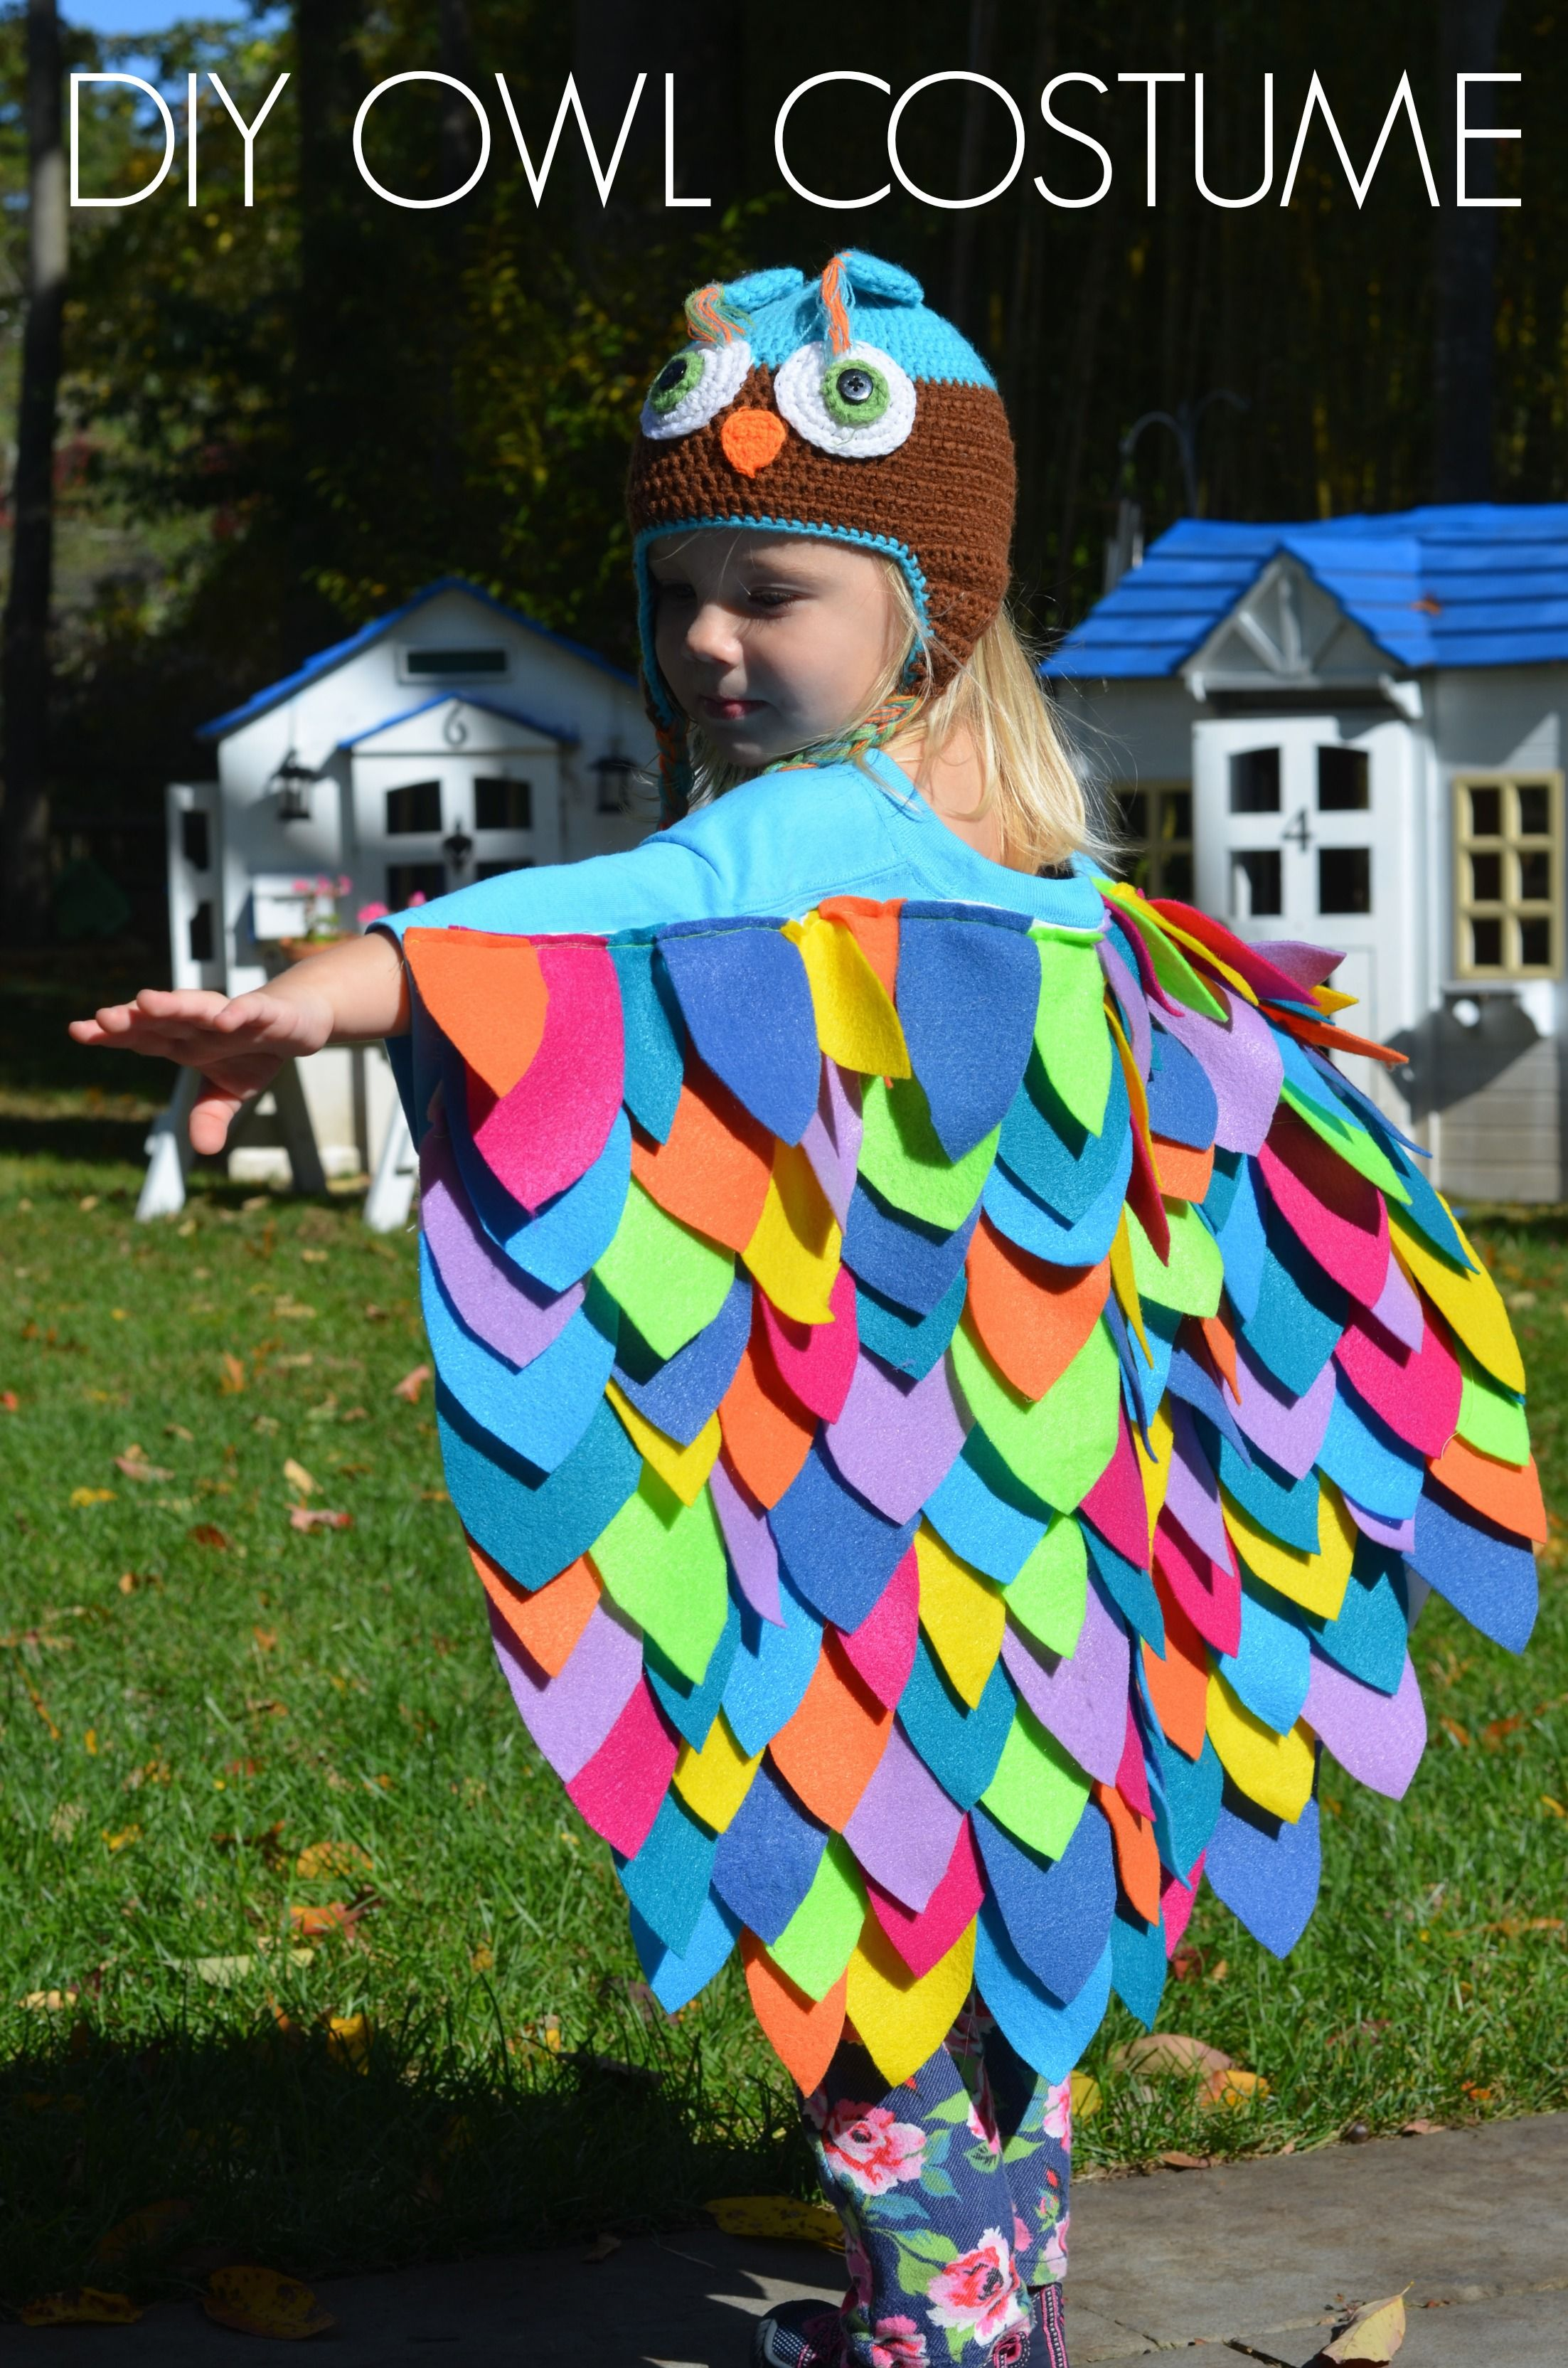 Holiday special occasion diy ideas pinterest owl costumes diy owl costume simple solutioingenieria Image collections